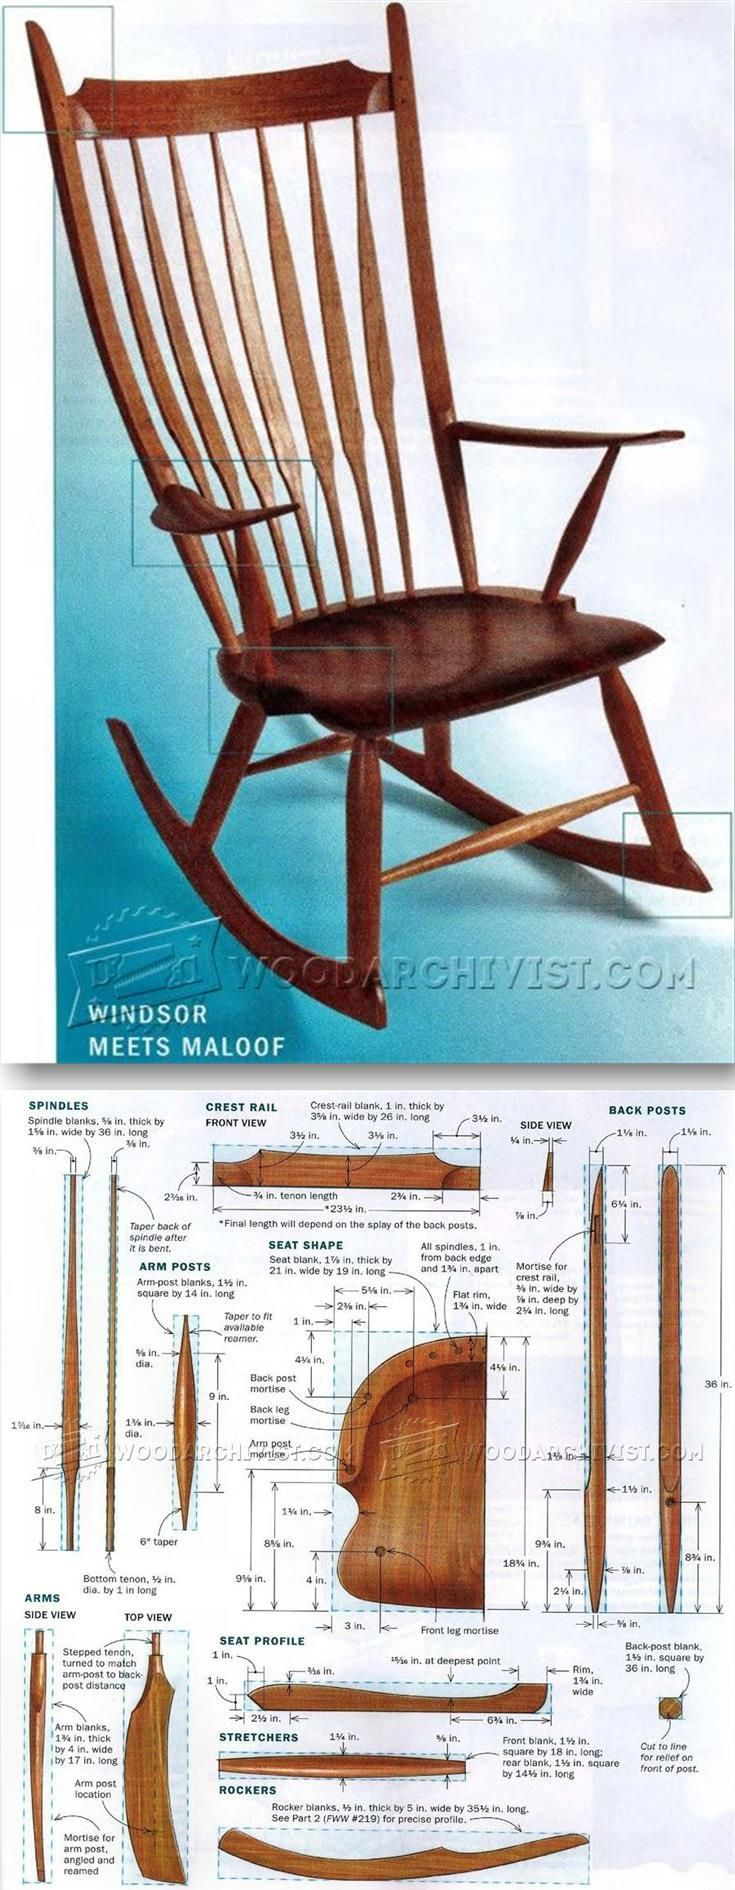 Windsor Rocking Chair Plans - Furniture Plans and Projects | WoodArchivist.com